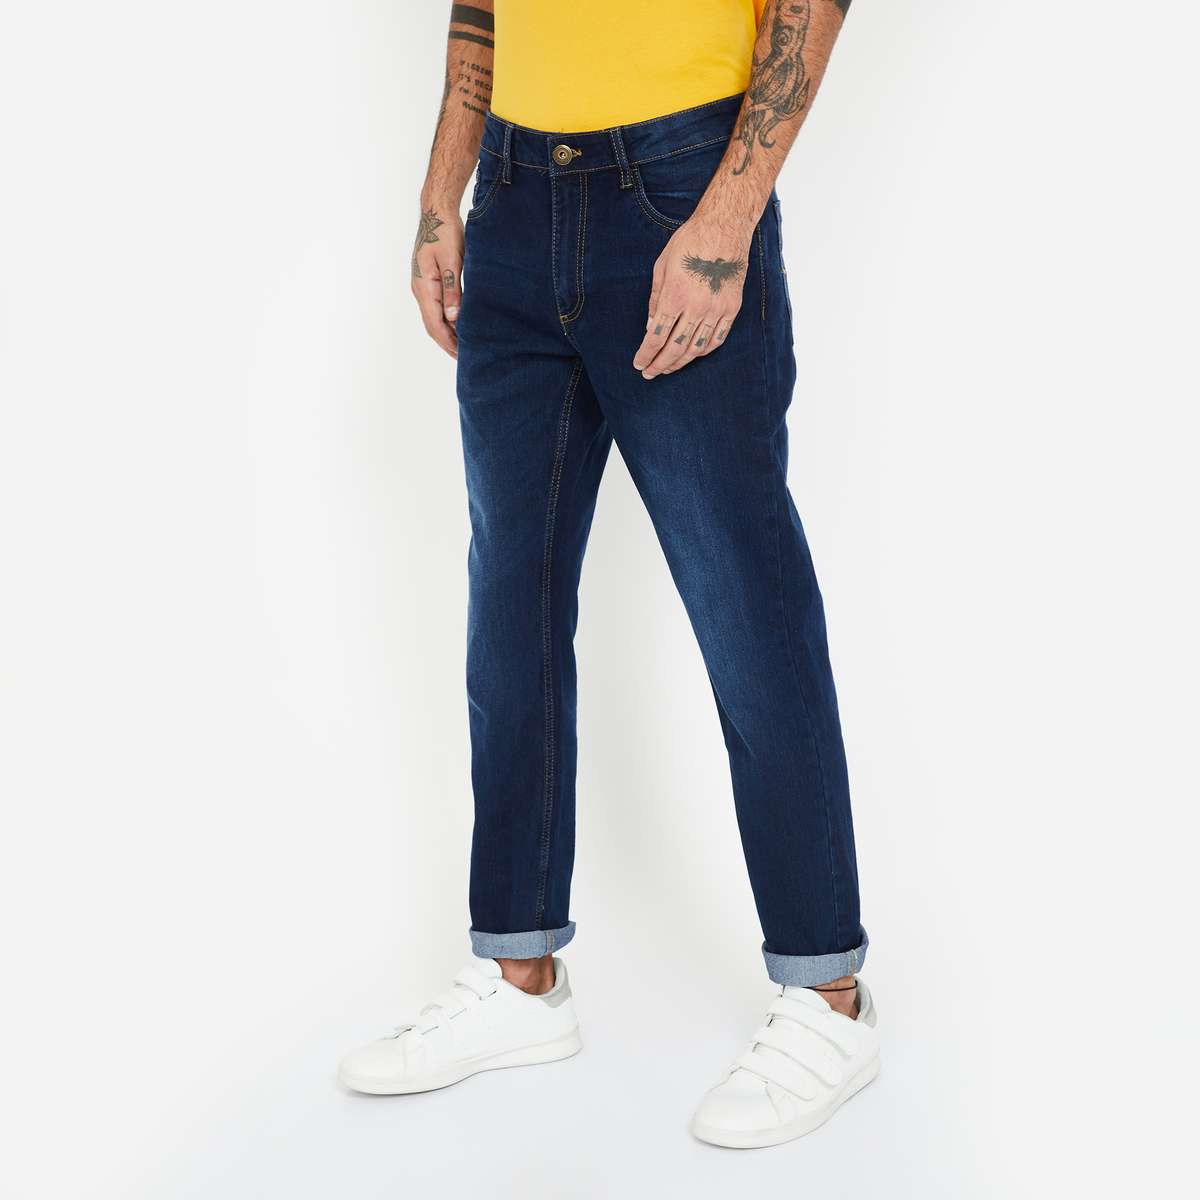 FORCA Dark Washed Slim Fit Jeans